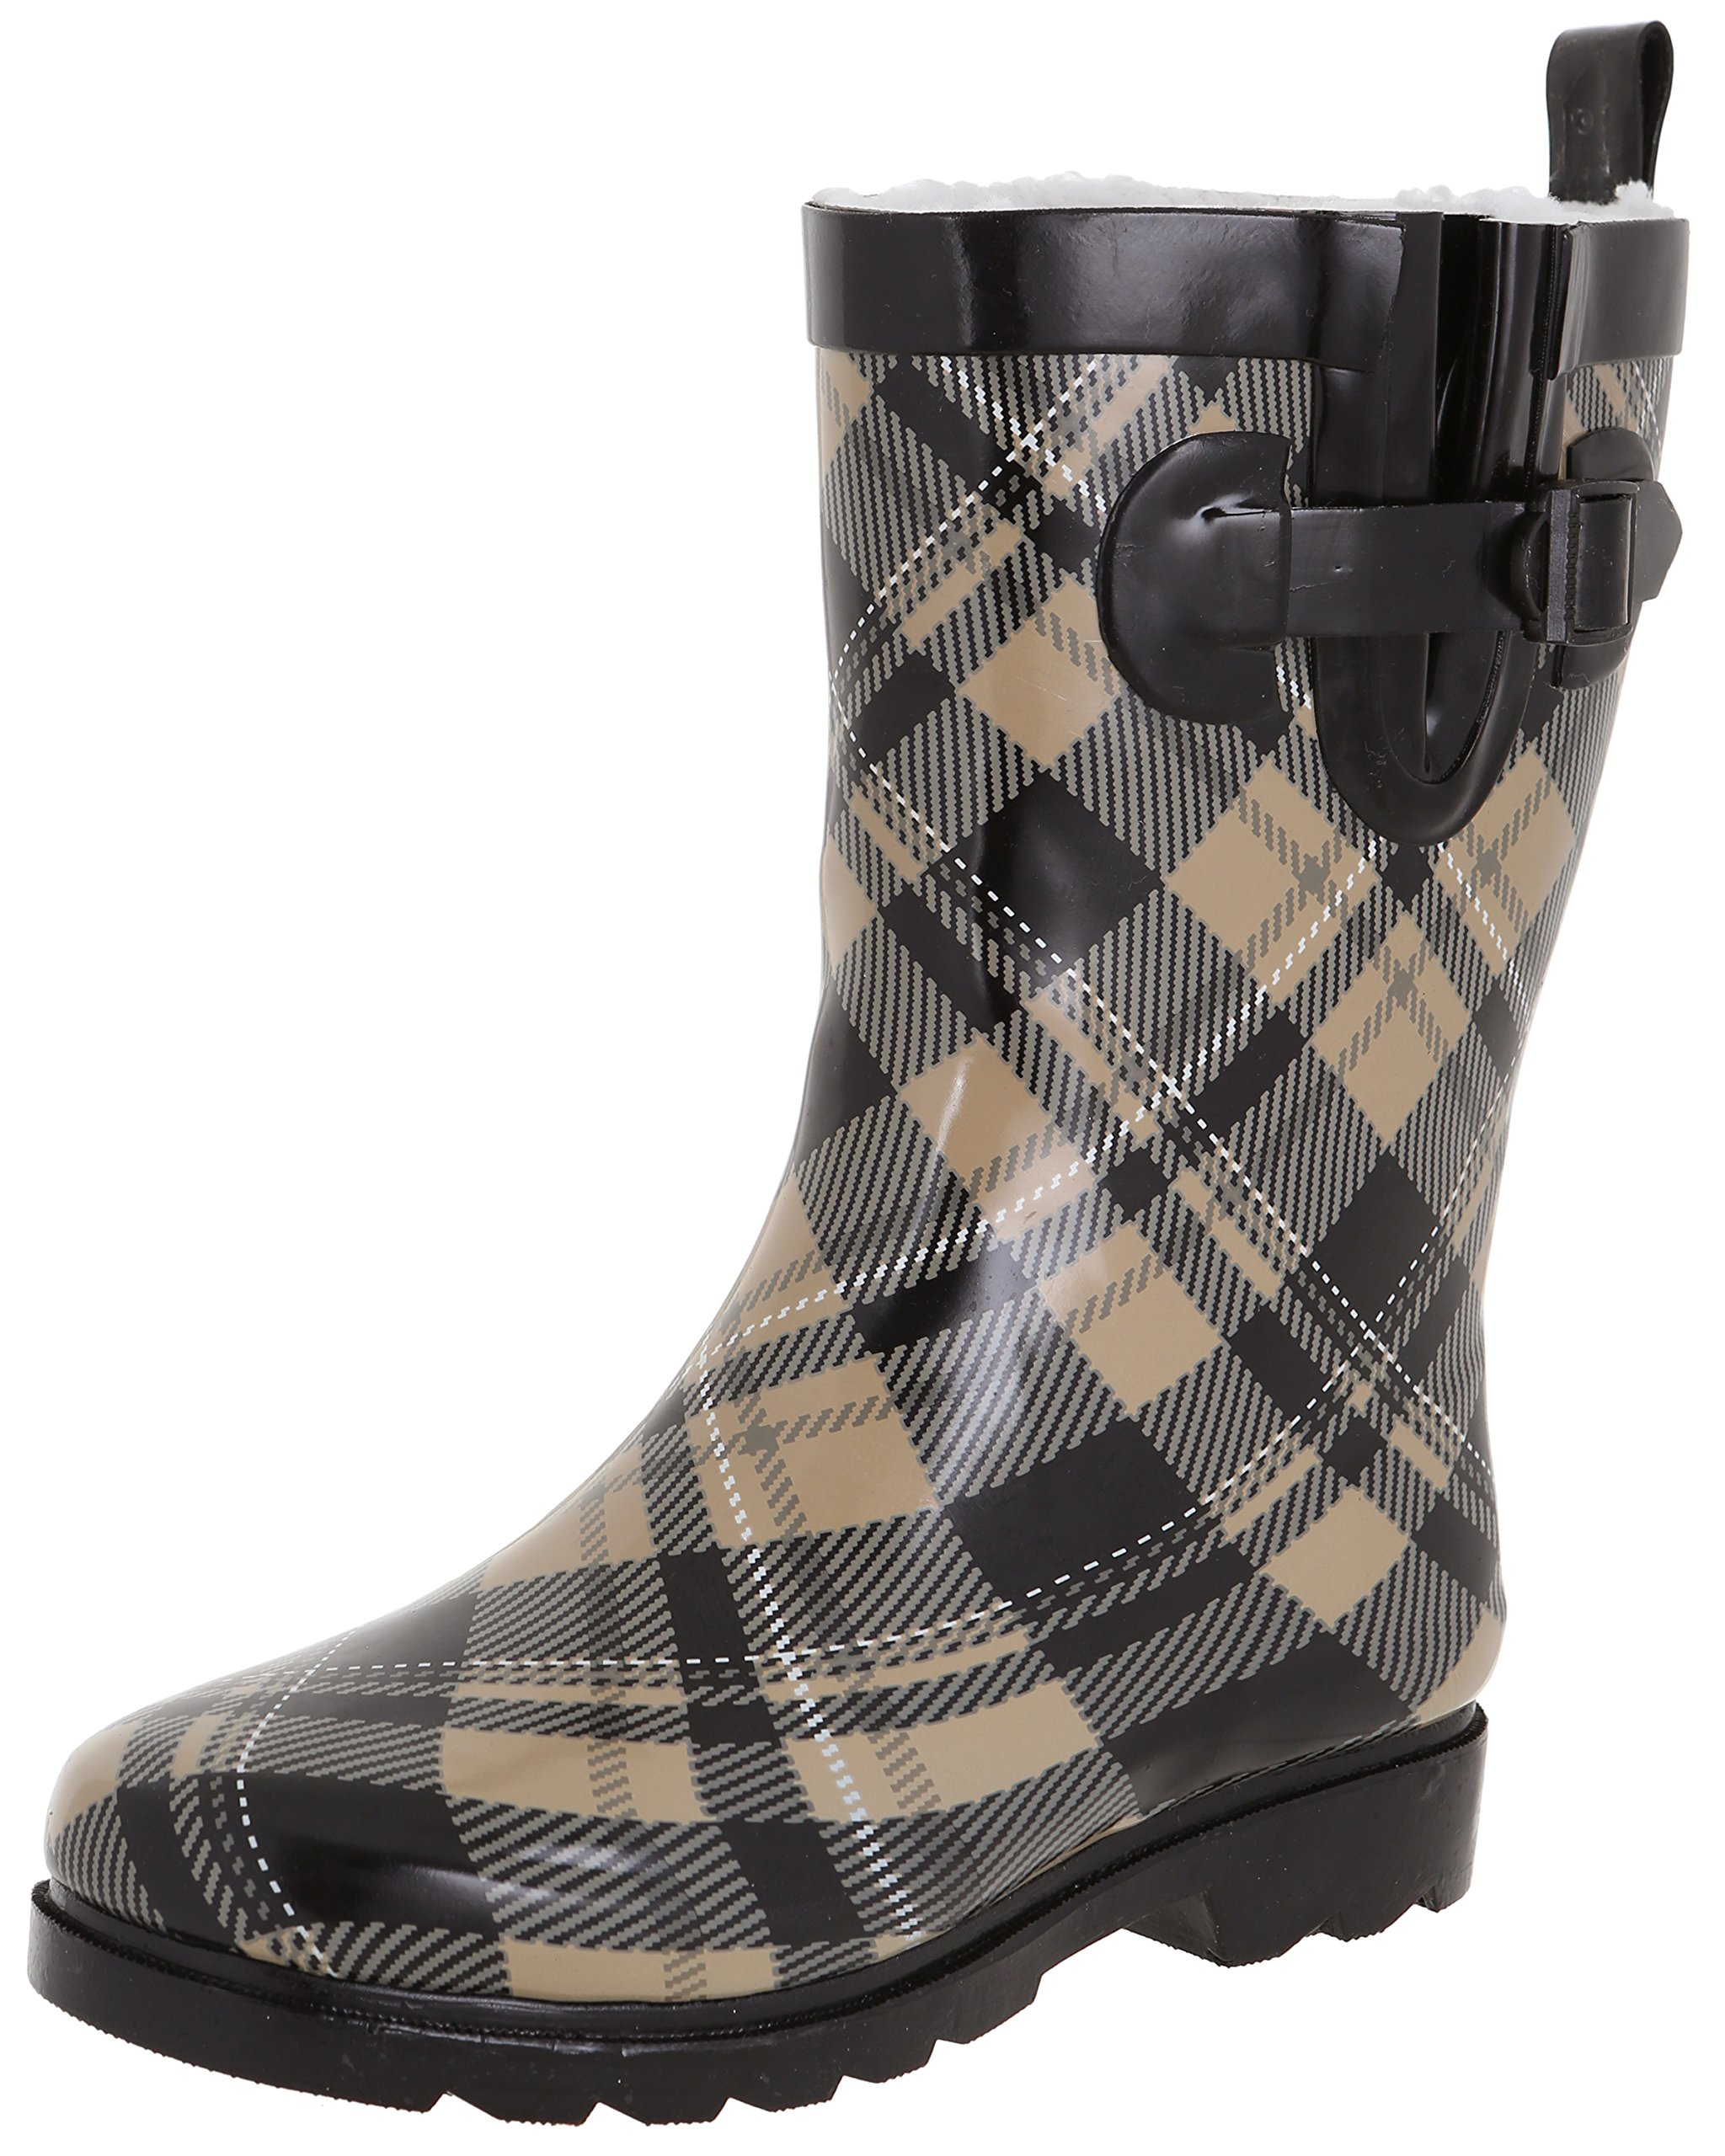 Capelli New York Ladies Shiny Plaid Printed Mid-Calf Rain Boot Warm Sand 9